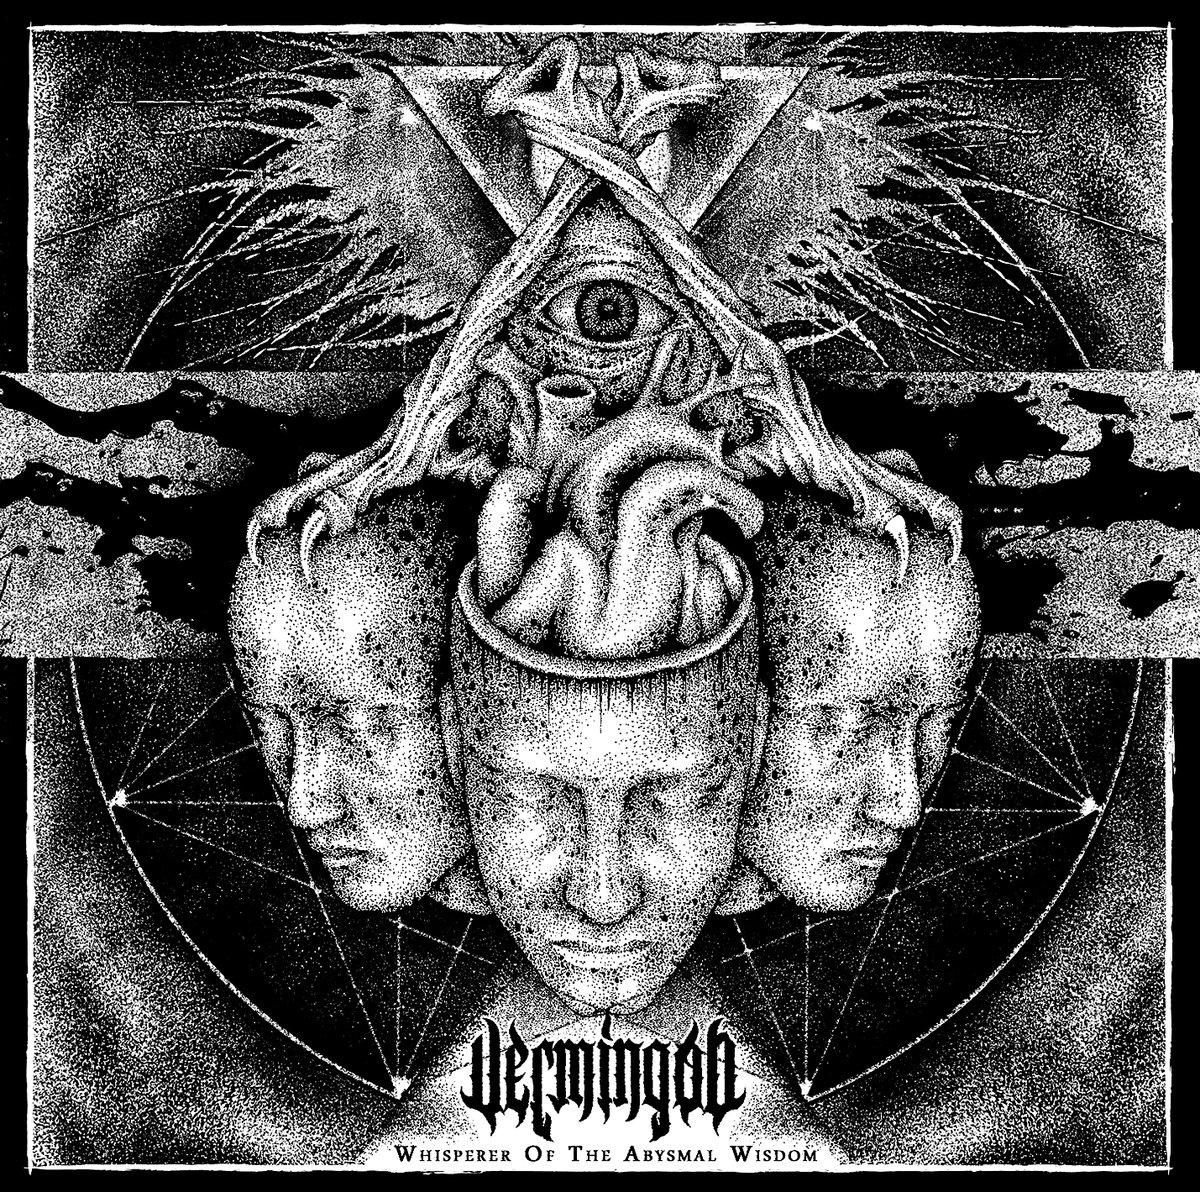 Vermingod - Whisperer Of The Abysmal Wisdom (2015)